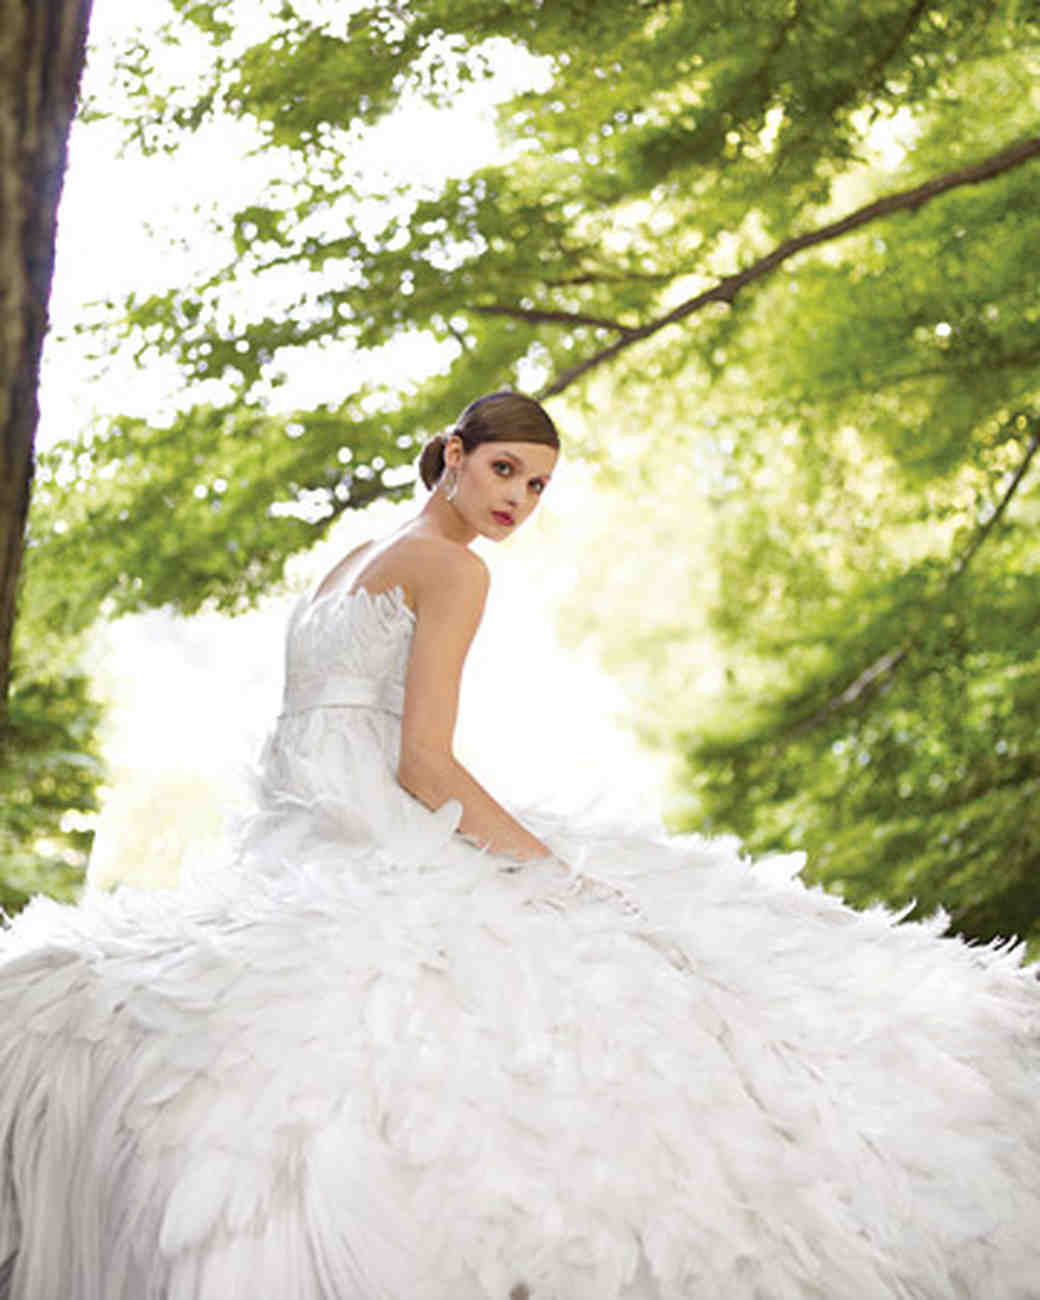 Bridal Gowns For Outdoor Weddings : Perfect gowns for an outdoor wedding martha stewart weddings